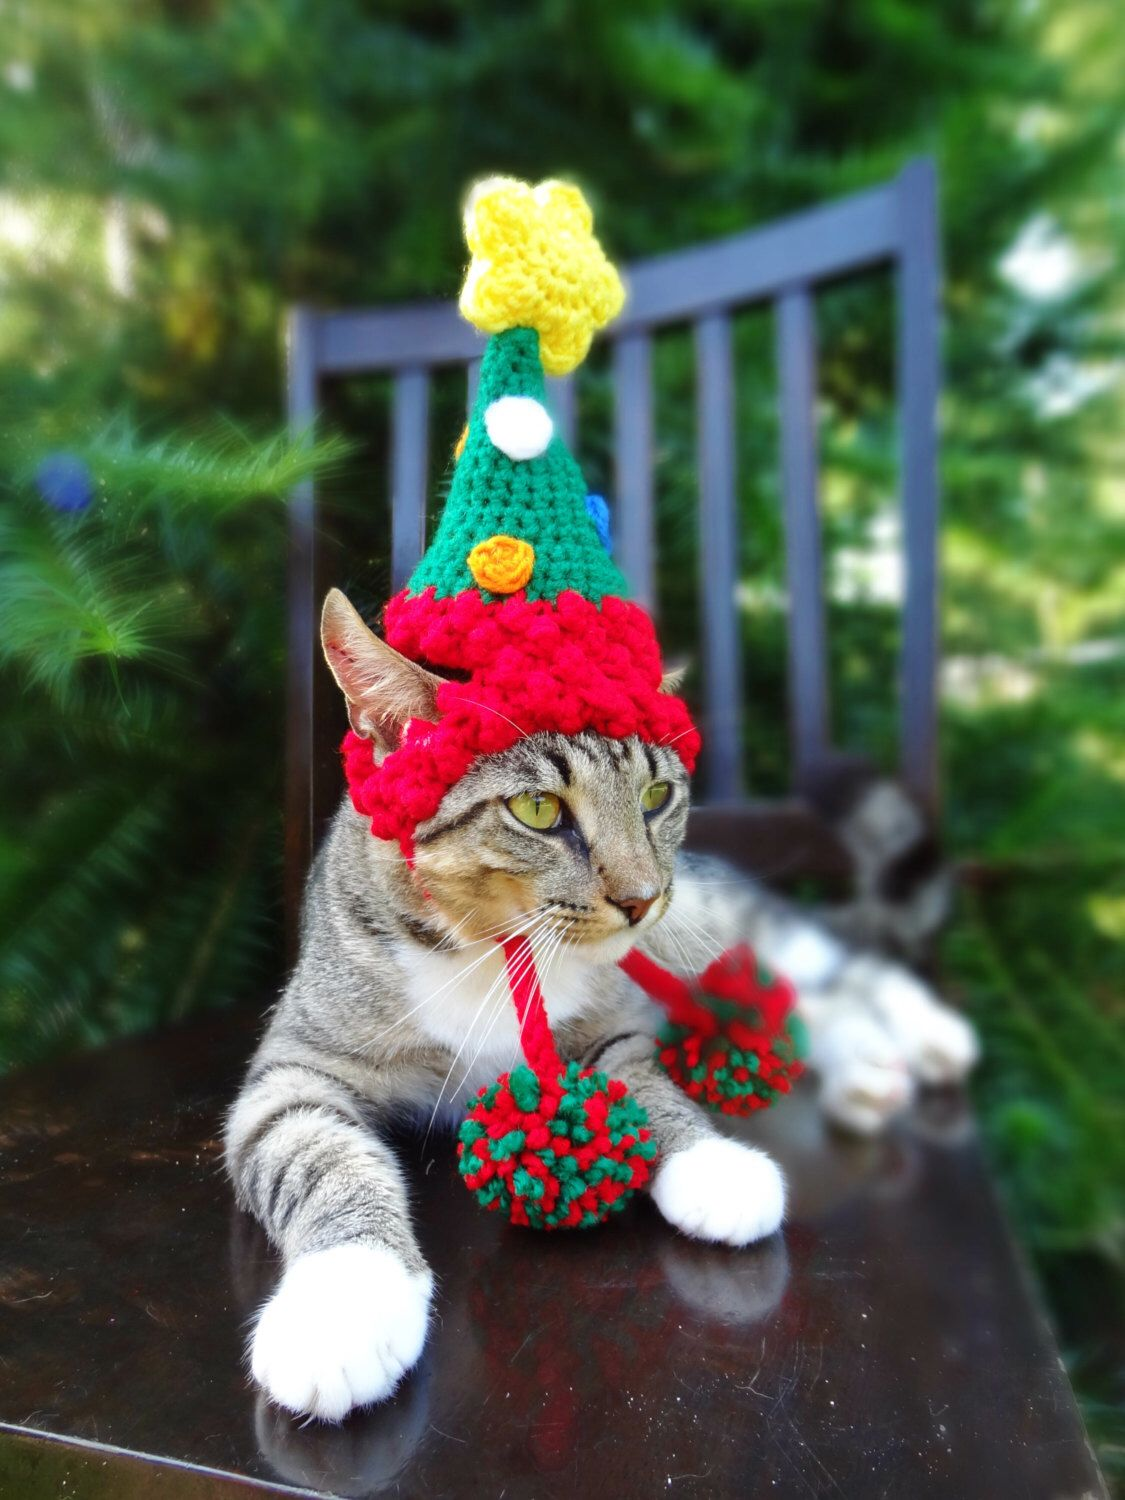 Christmas Cat Costume Hat The Christmas Tree Hat For Cats And Small Dogs Christmas Costume For Pets By Ih Christmas Cats Christmas Dog Costume Pet Costumes